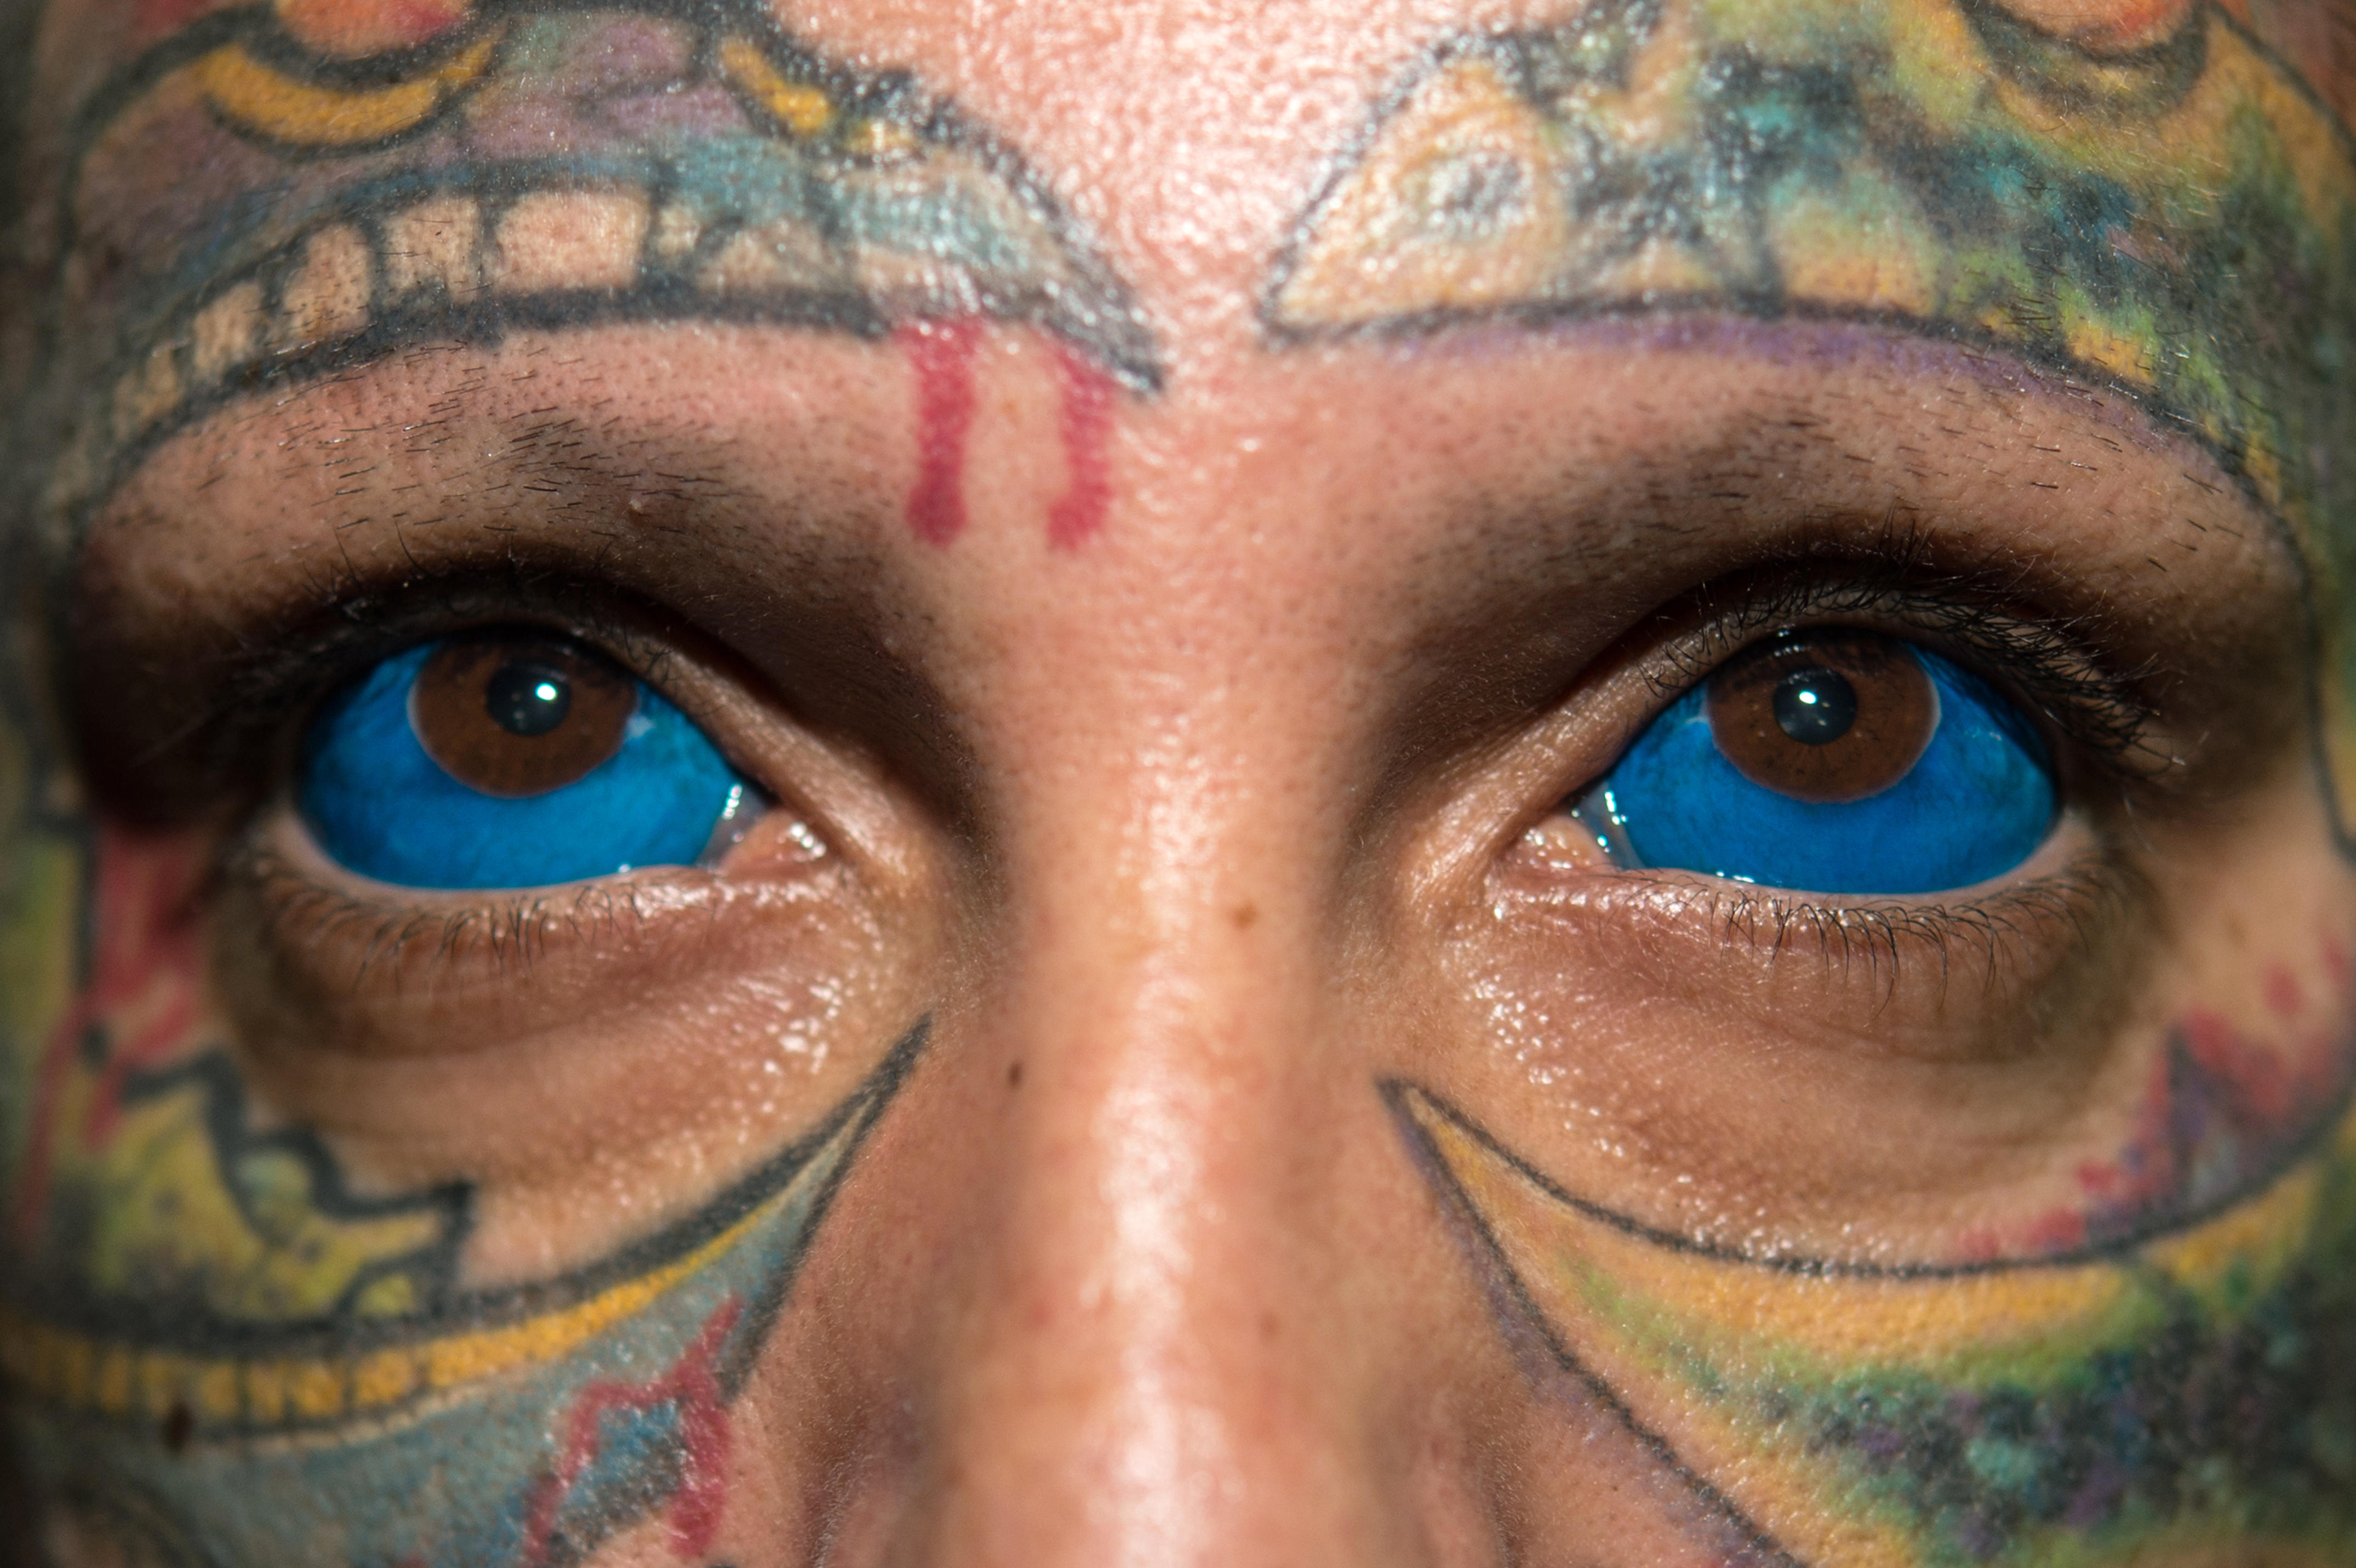 Sclera tattoo gone wrong prompts warning from model Catt Gallinger ...